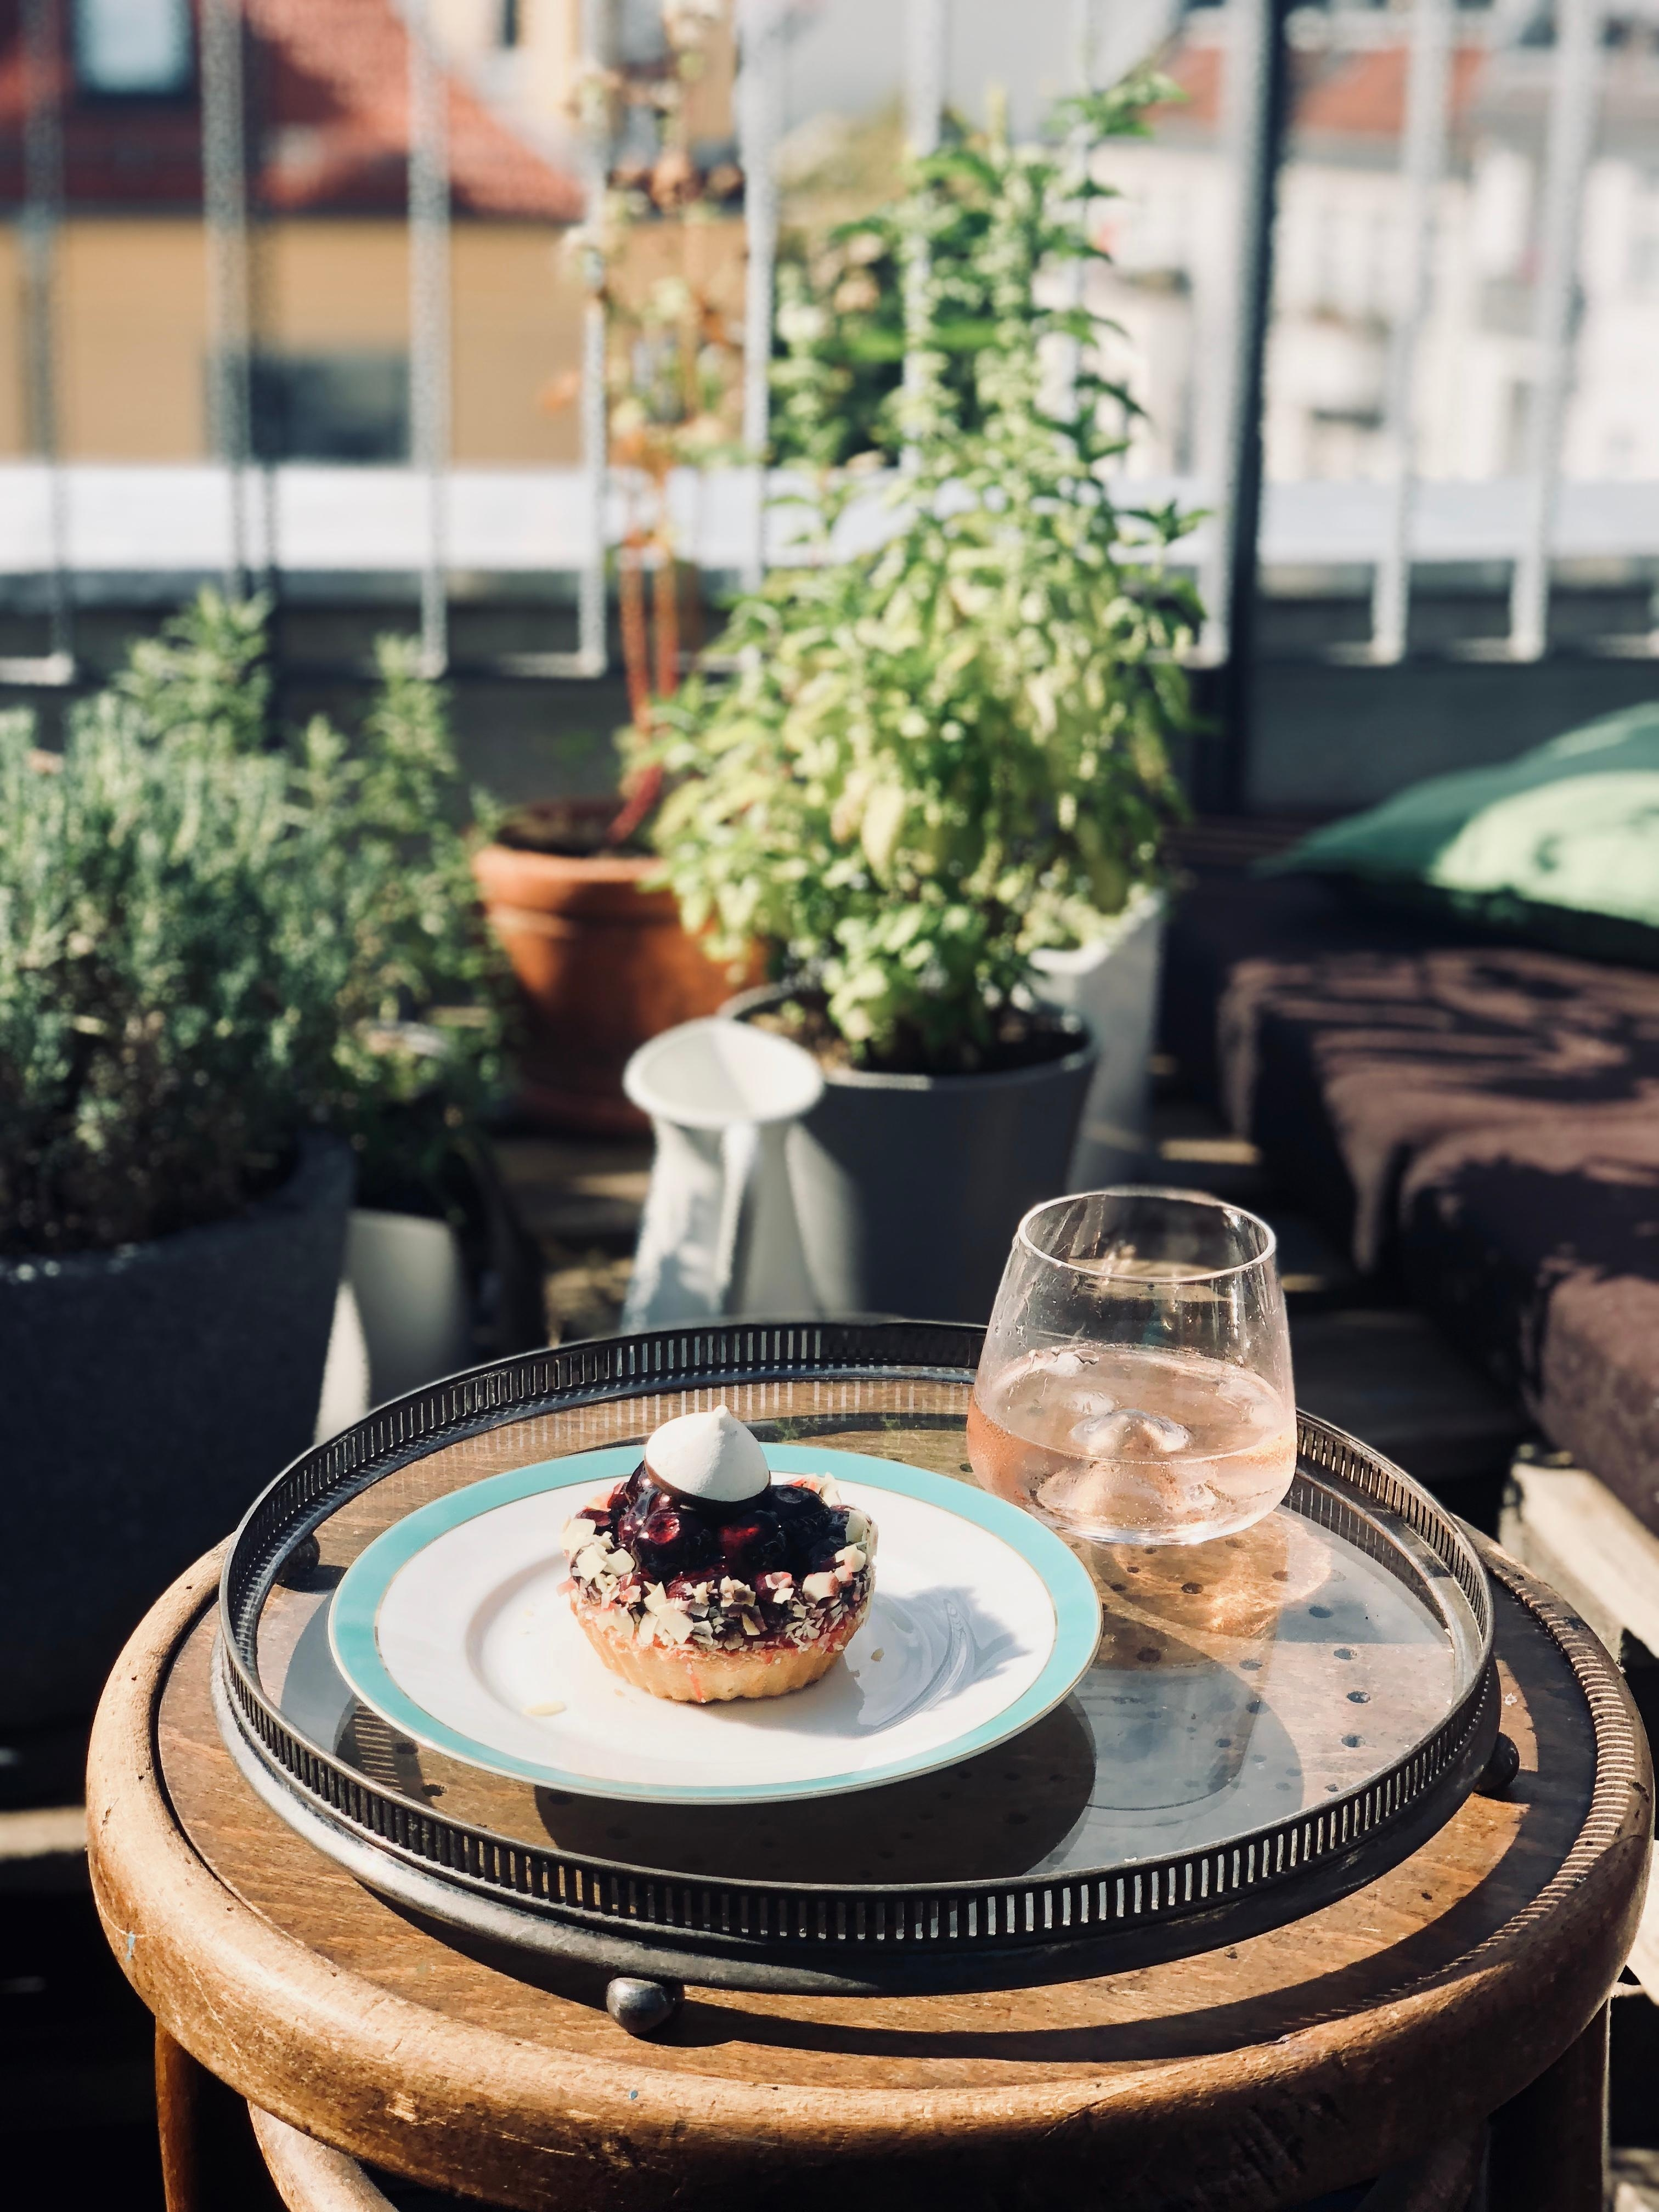 Friday afternoons are for pastry & rosé on our rooftop terrace ☀️🍷🍰 #home #berlin #kuchen #wein #rose #wine #terrasse